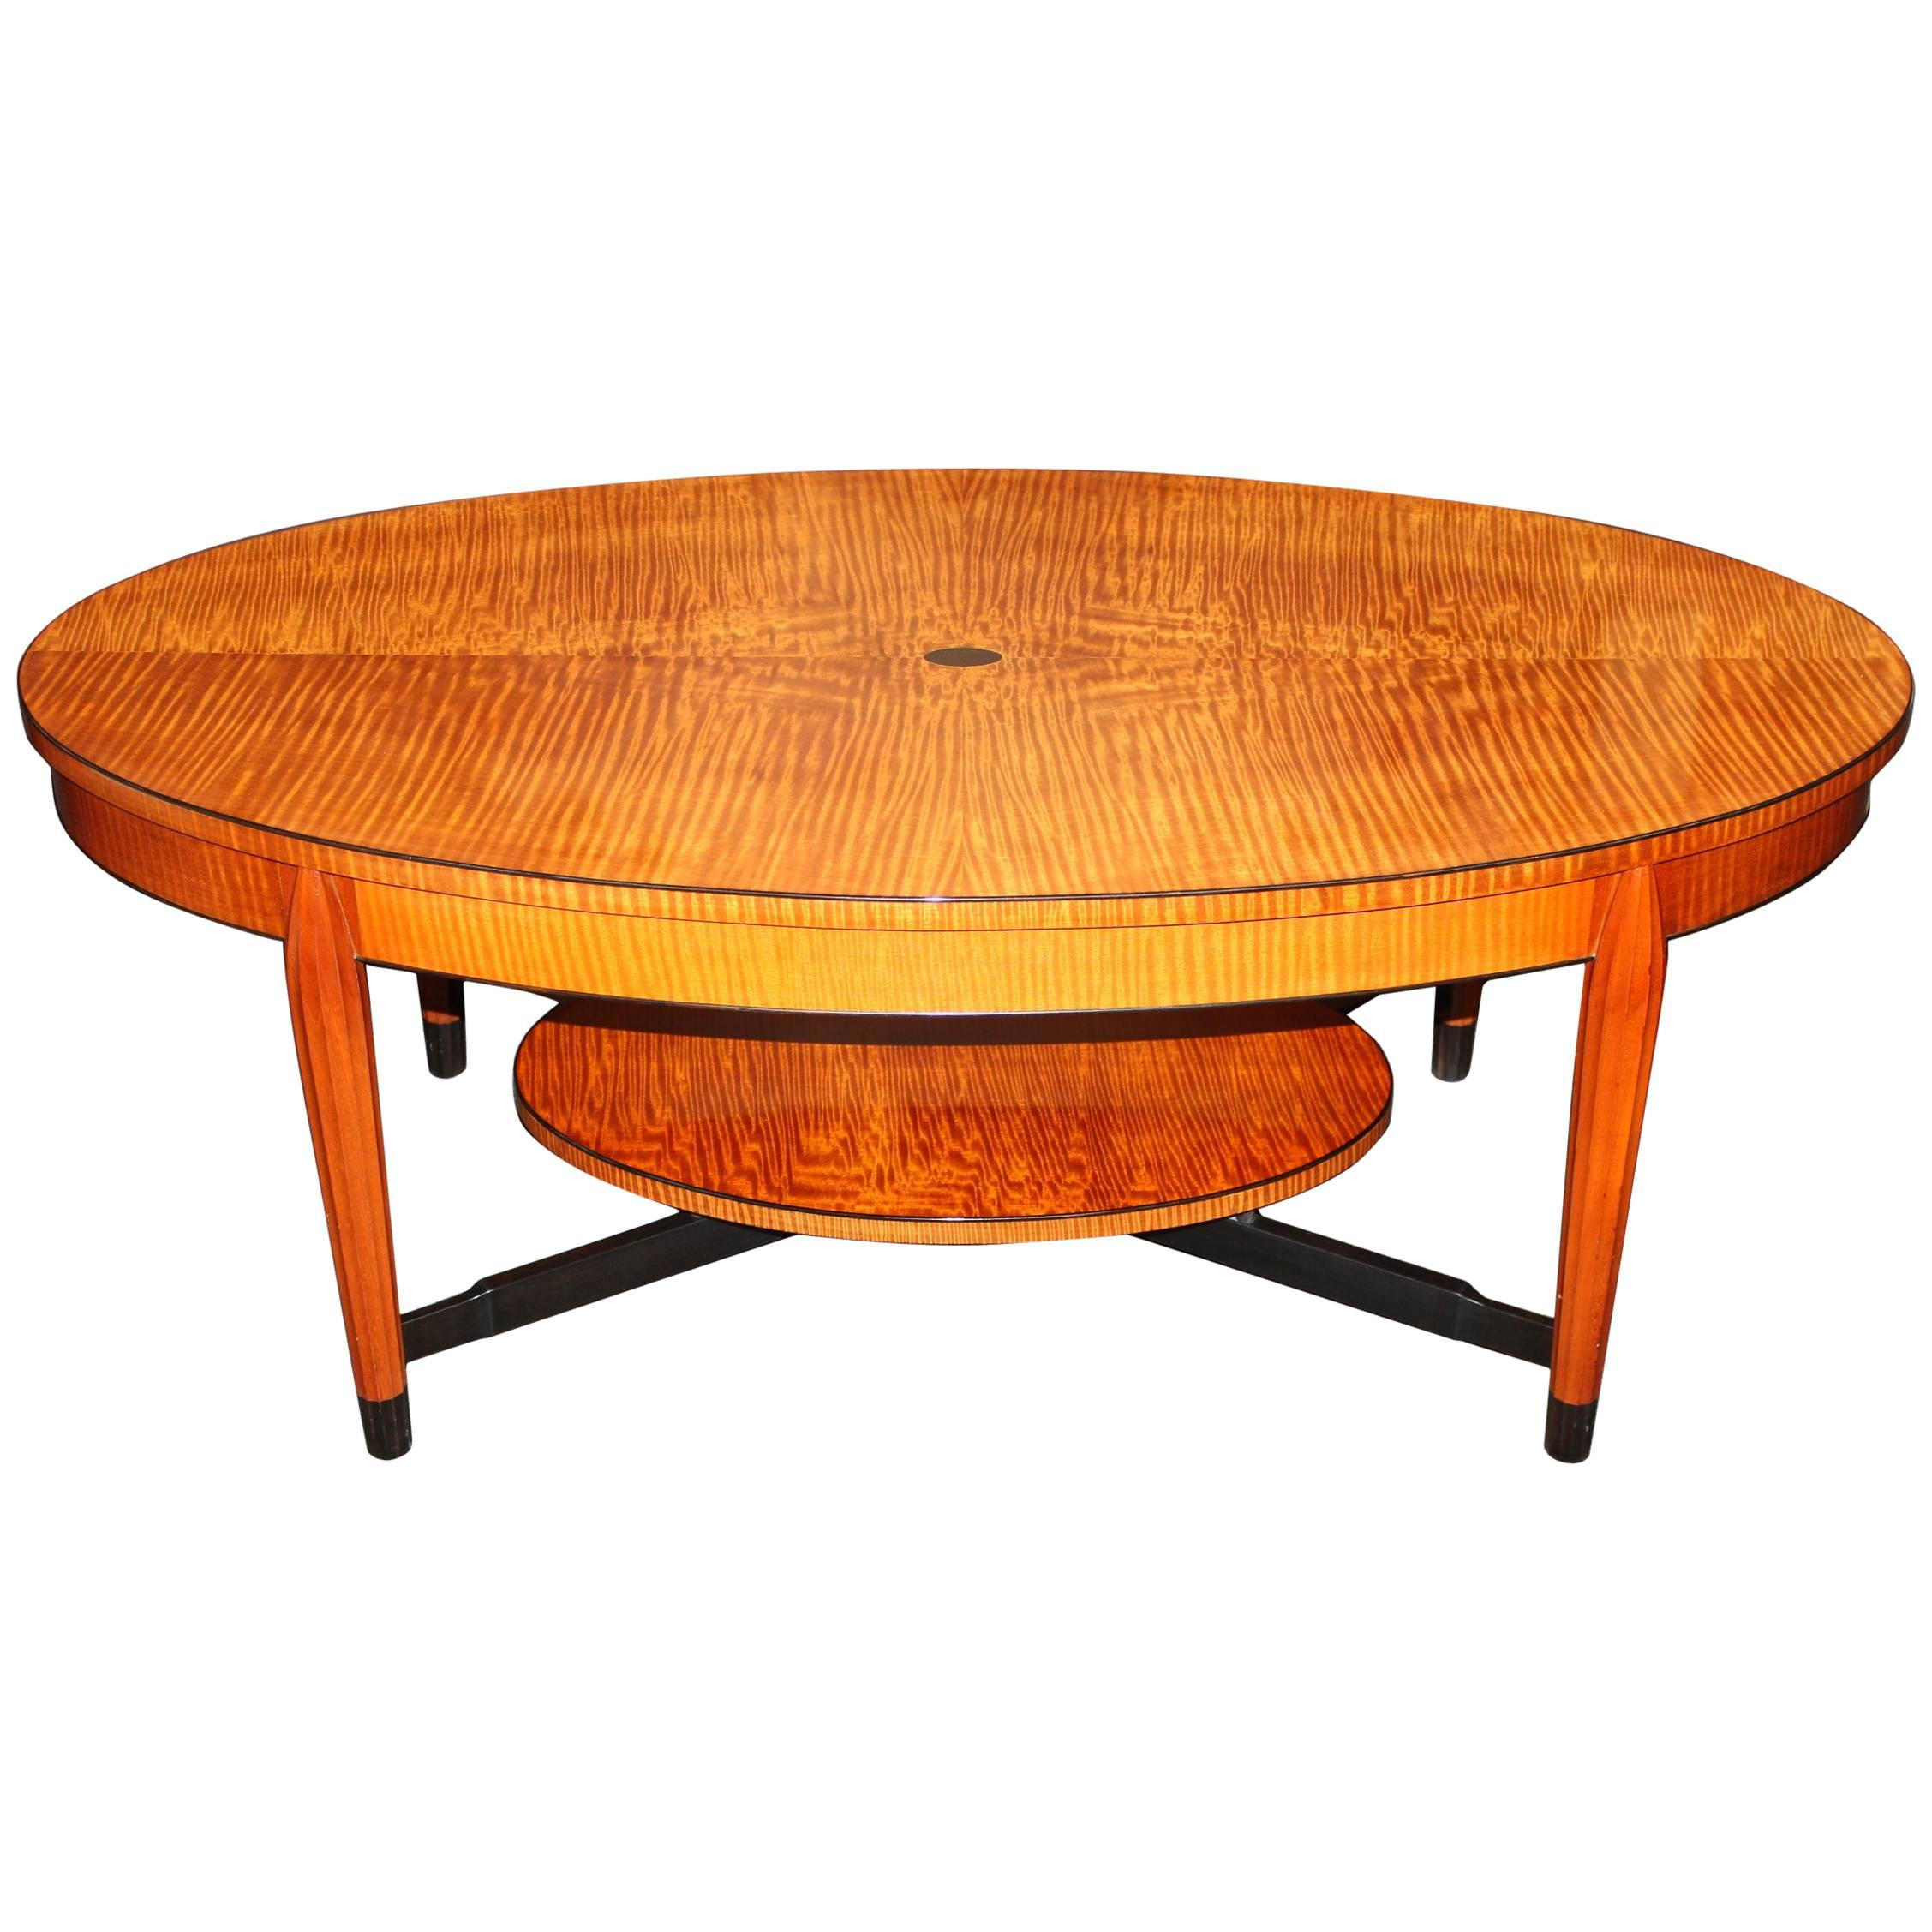 Charmant Terry Moore NH Furniture Master Artisan Made Oval Tiger Maple Coffee Table  For Sale